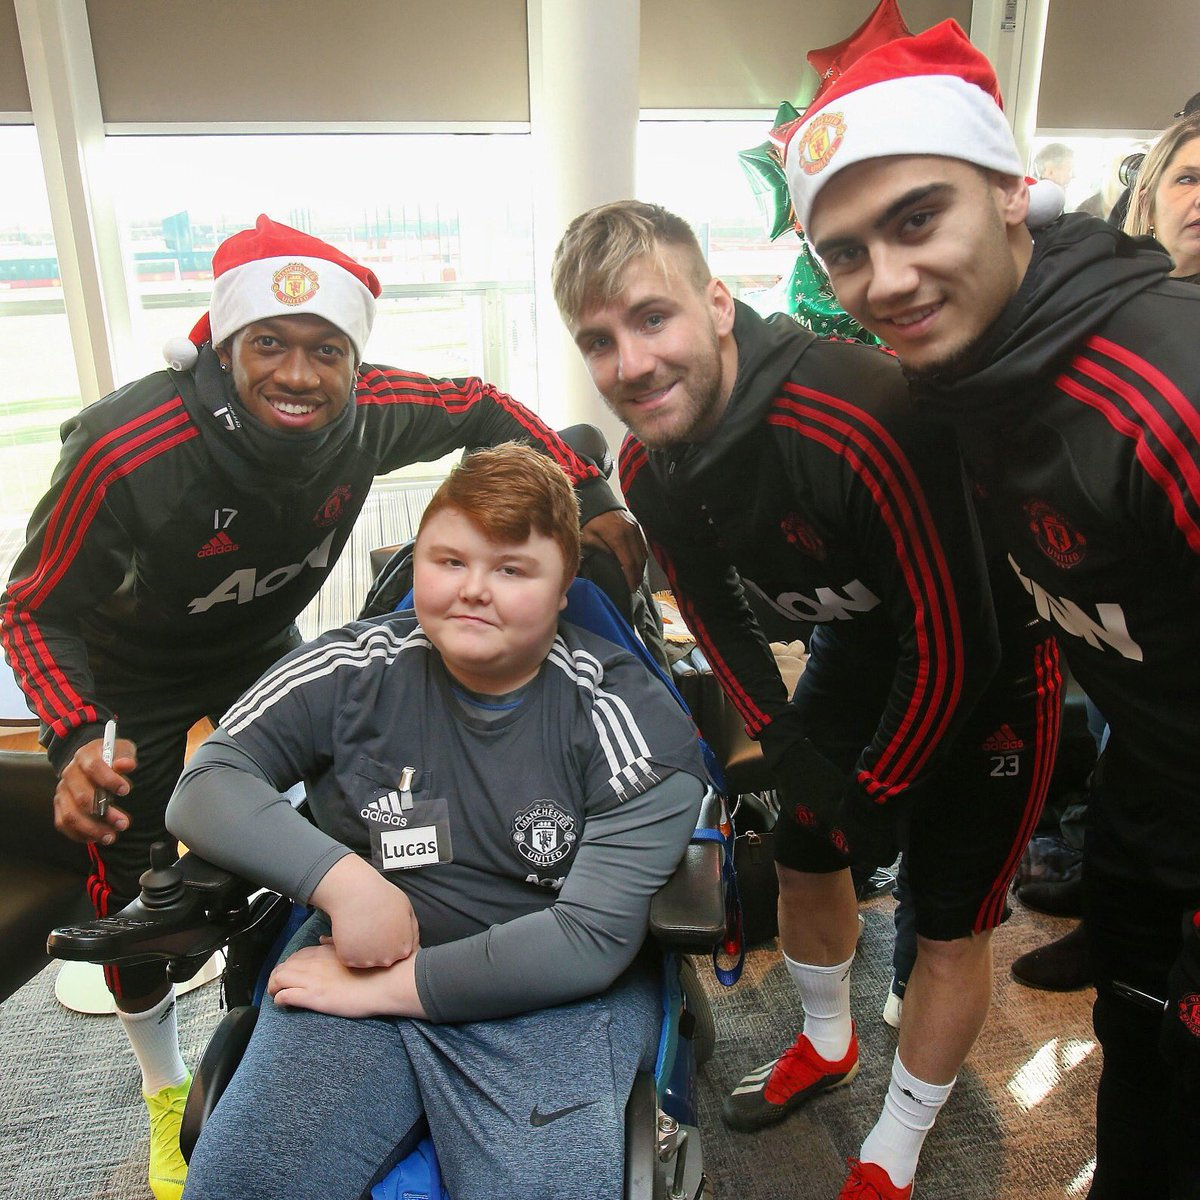 A Christmas dream day with @MU_Foundation. Great to meet you all today! ❤ #MUDreamDay #MUFC